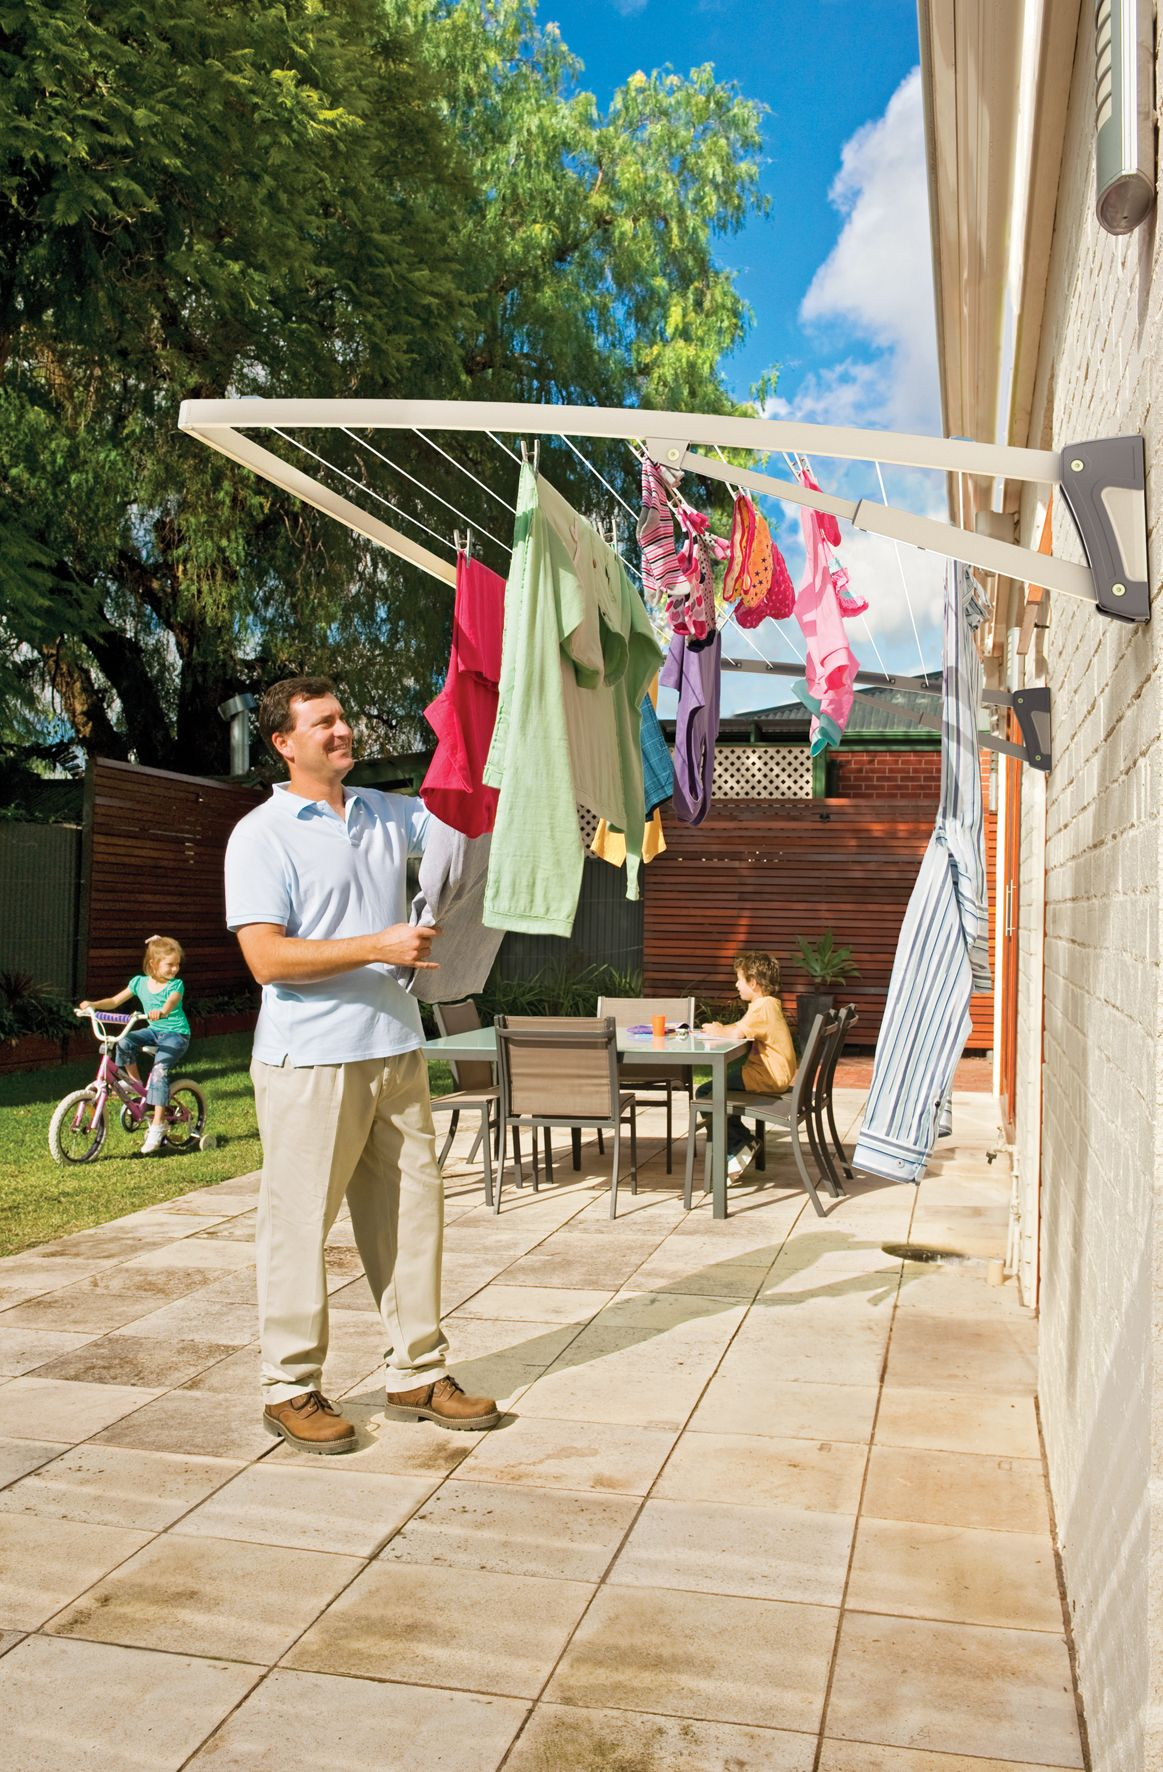 hills supa fold mono folding frame clothesline outdoors